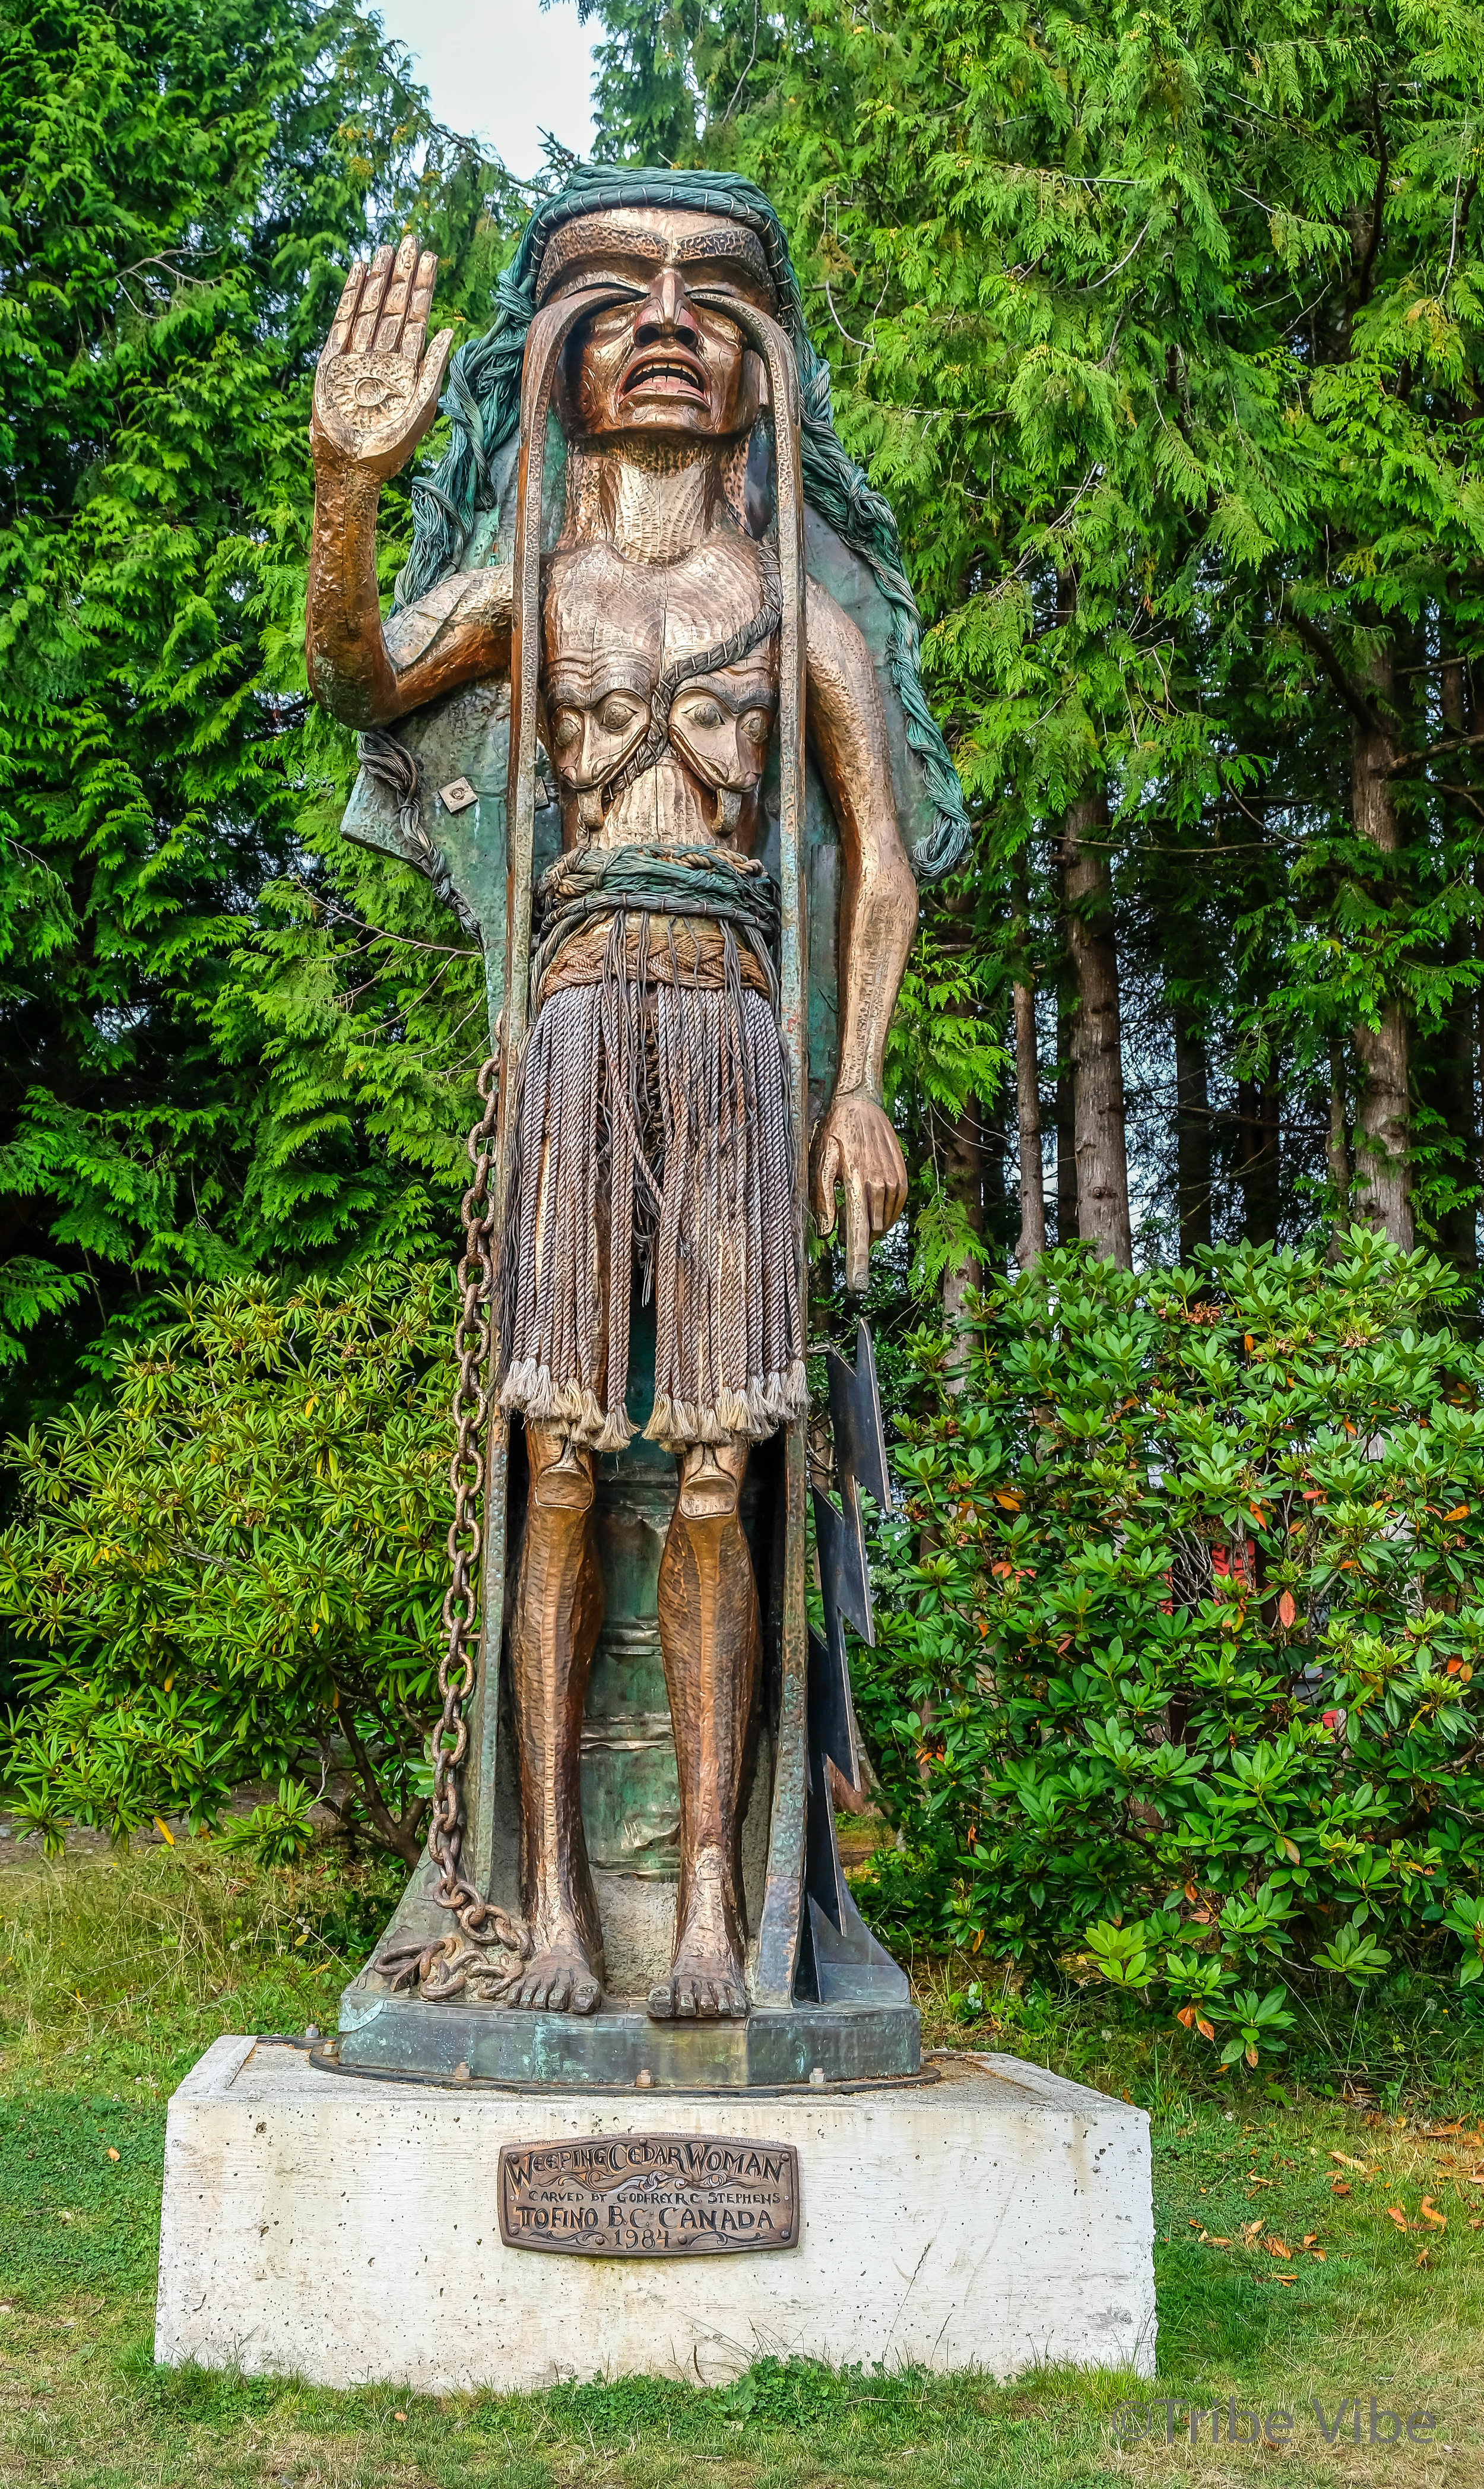 Weeping Cedar Woman representing an important period in the history of Clayoquot Sound, BC